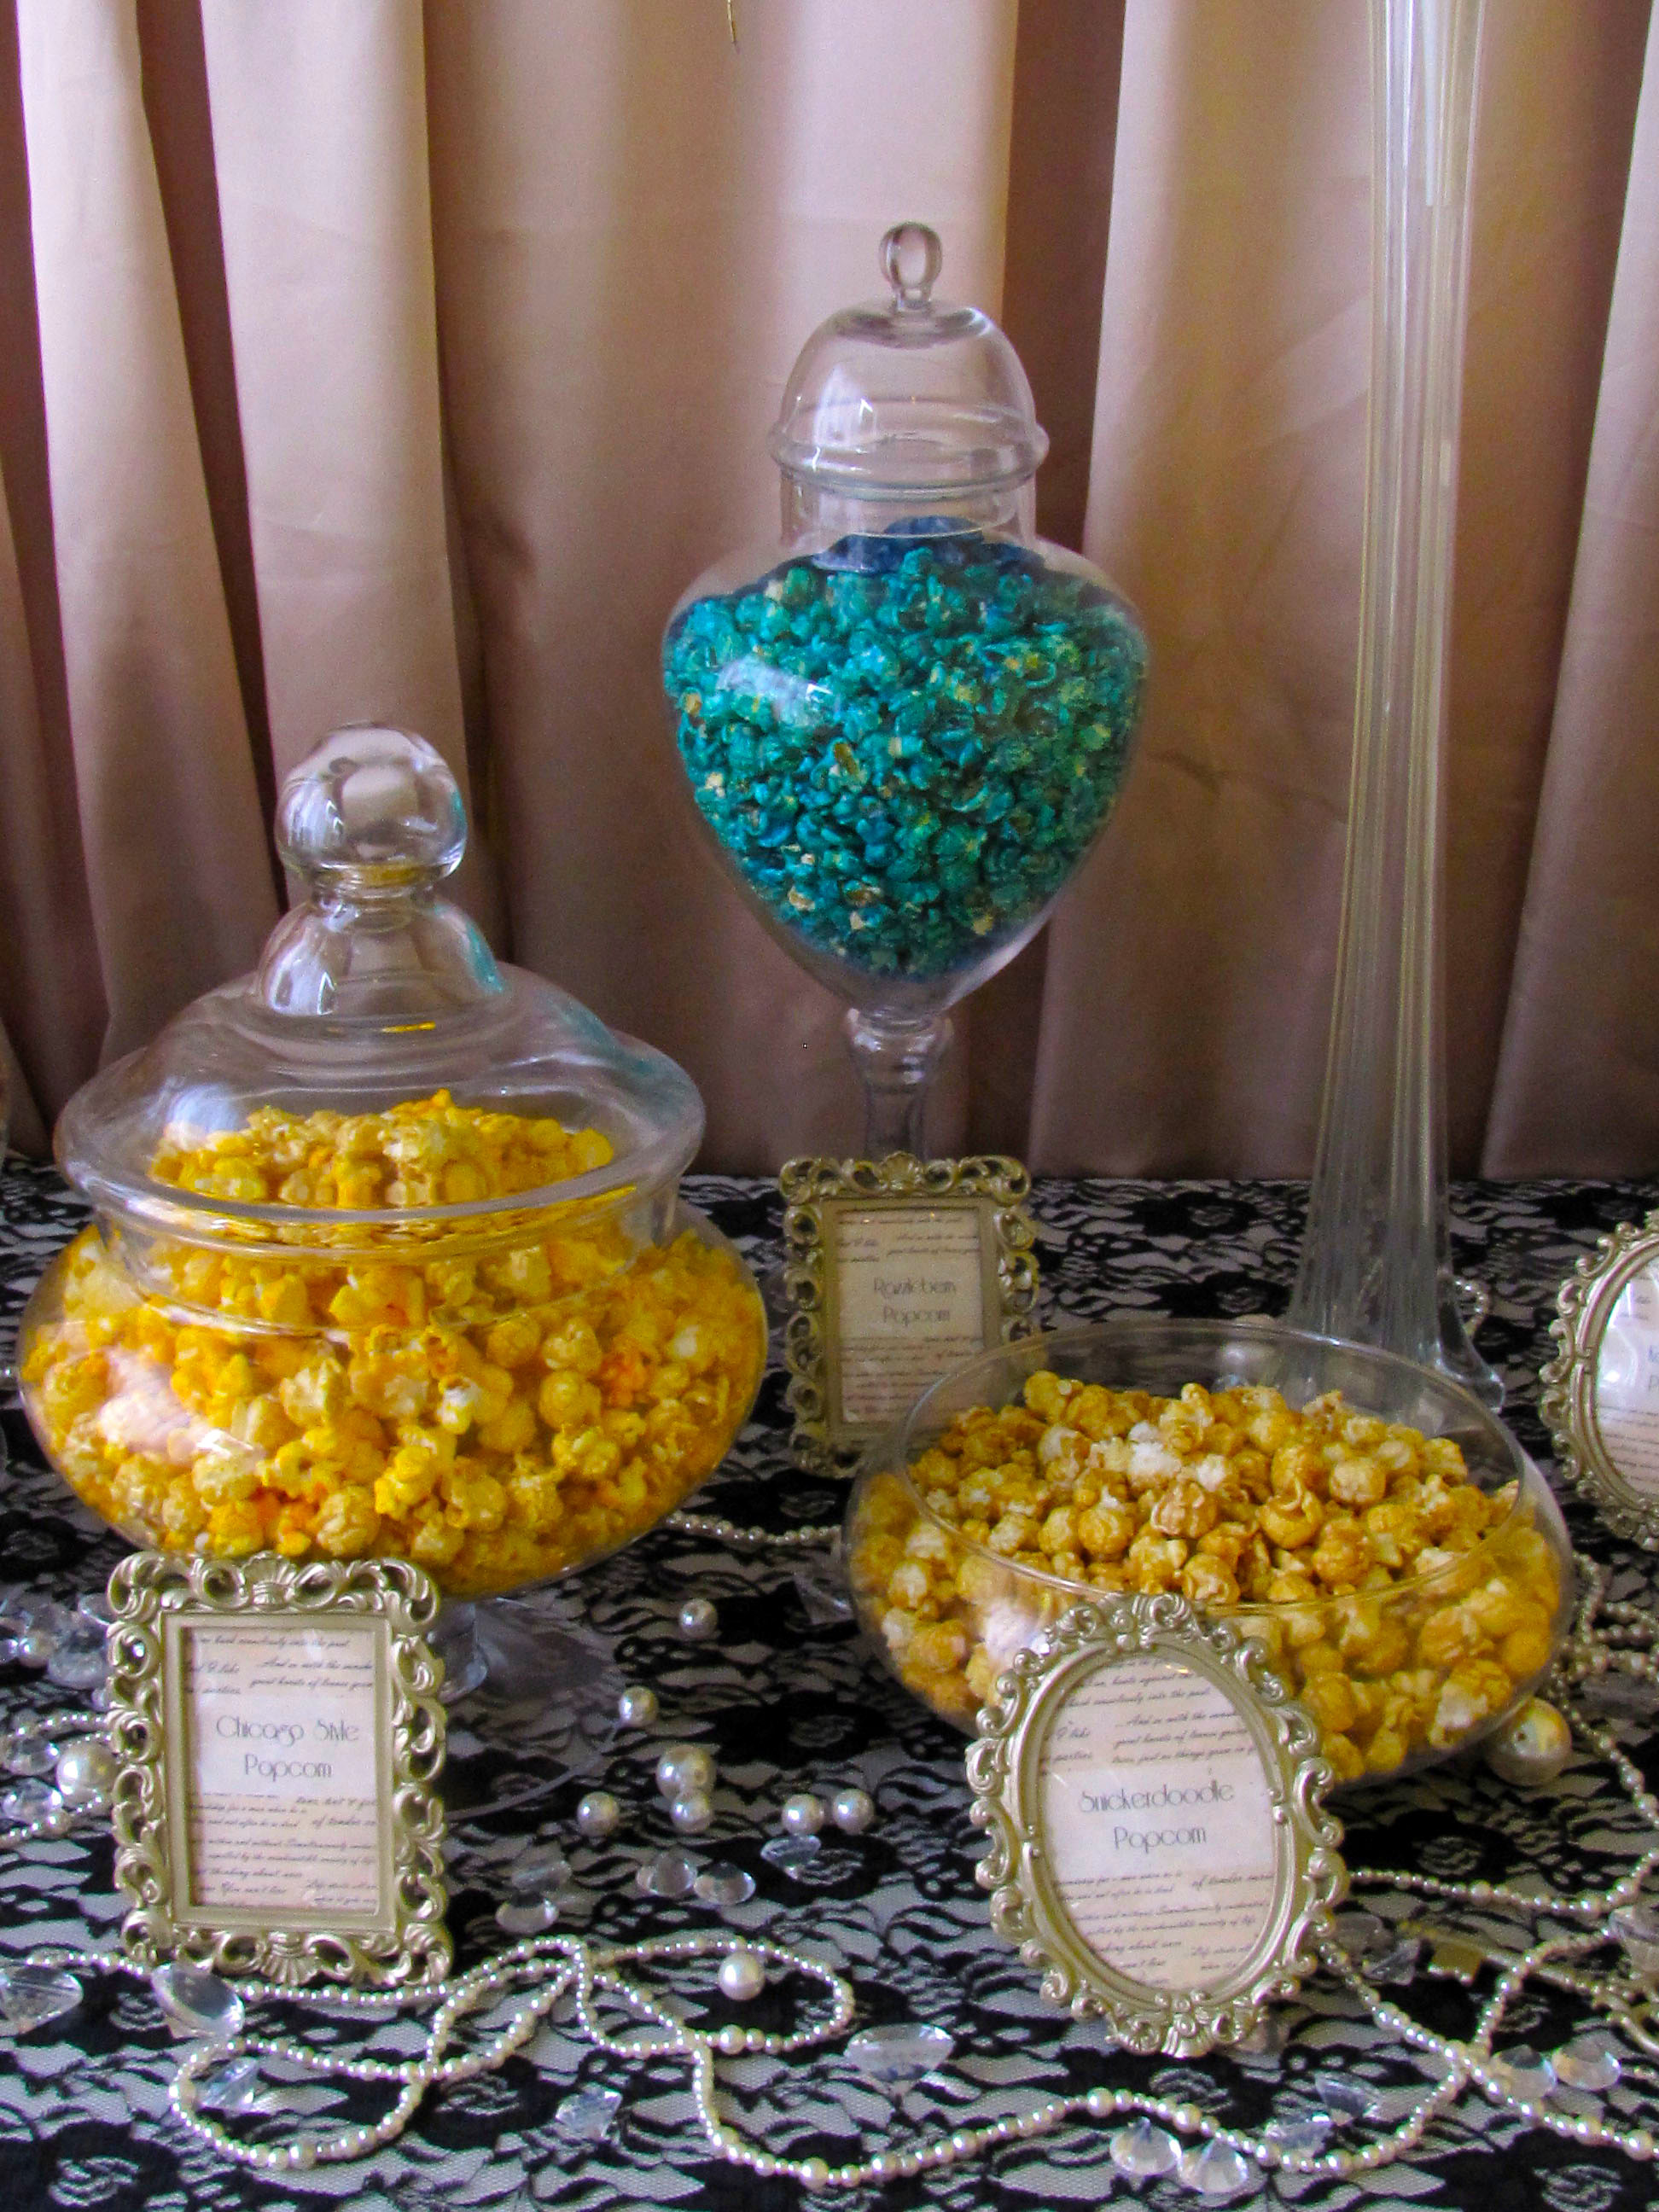 gatsby-1920-s-wedding-popcorn-bar.jpg